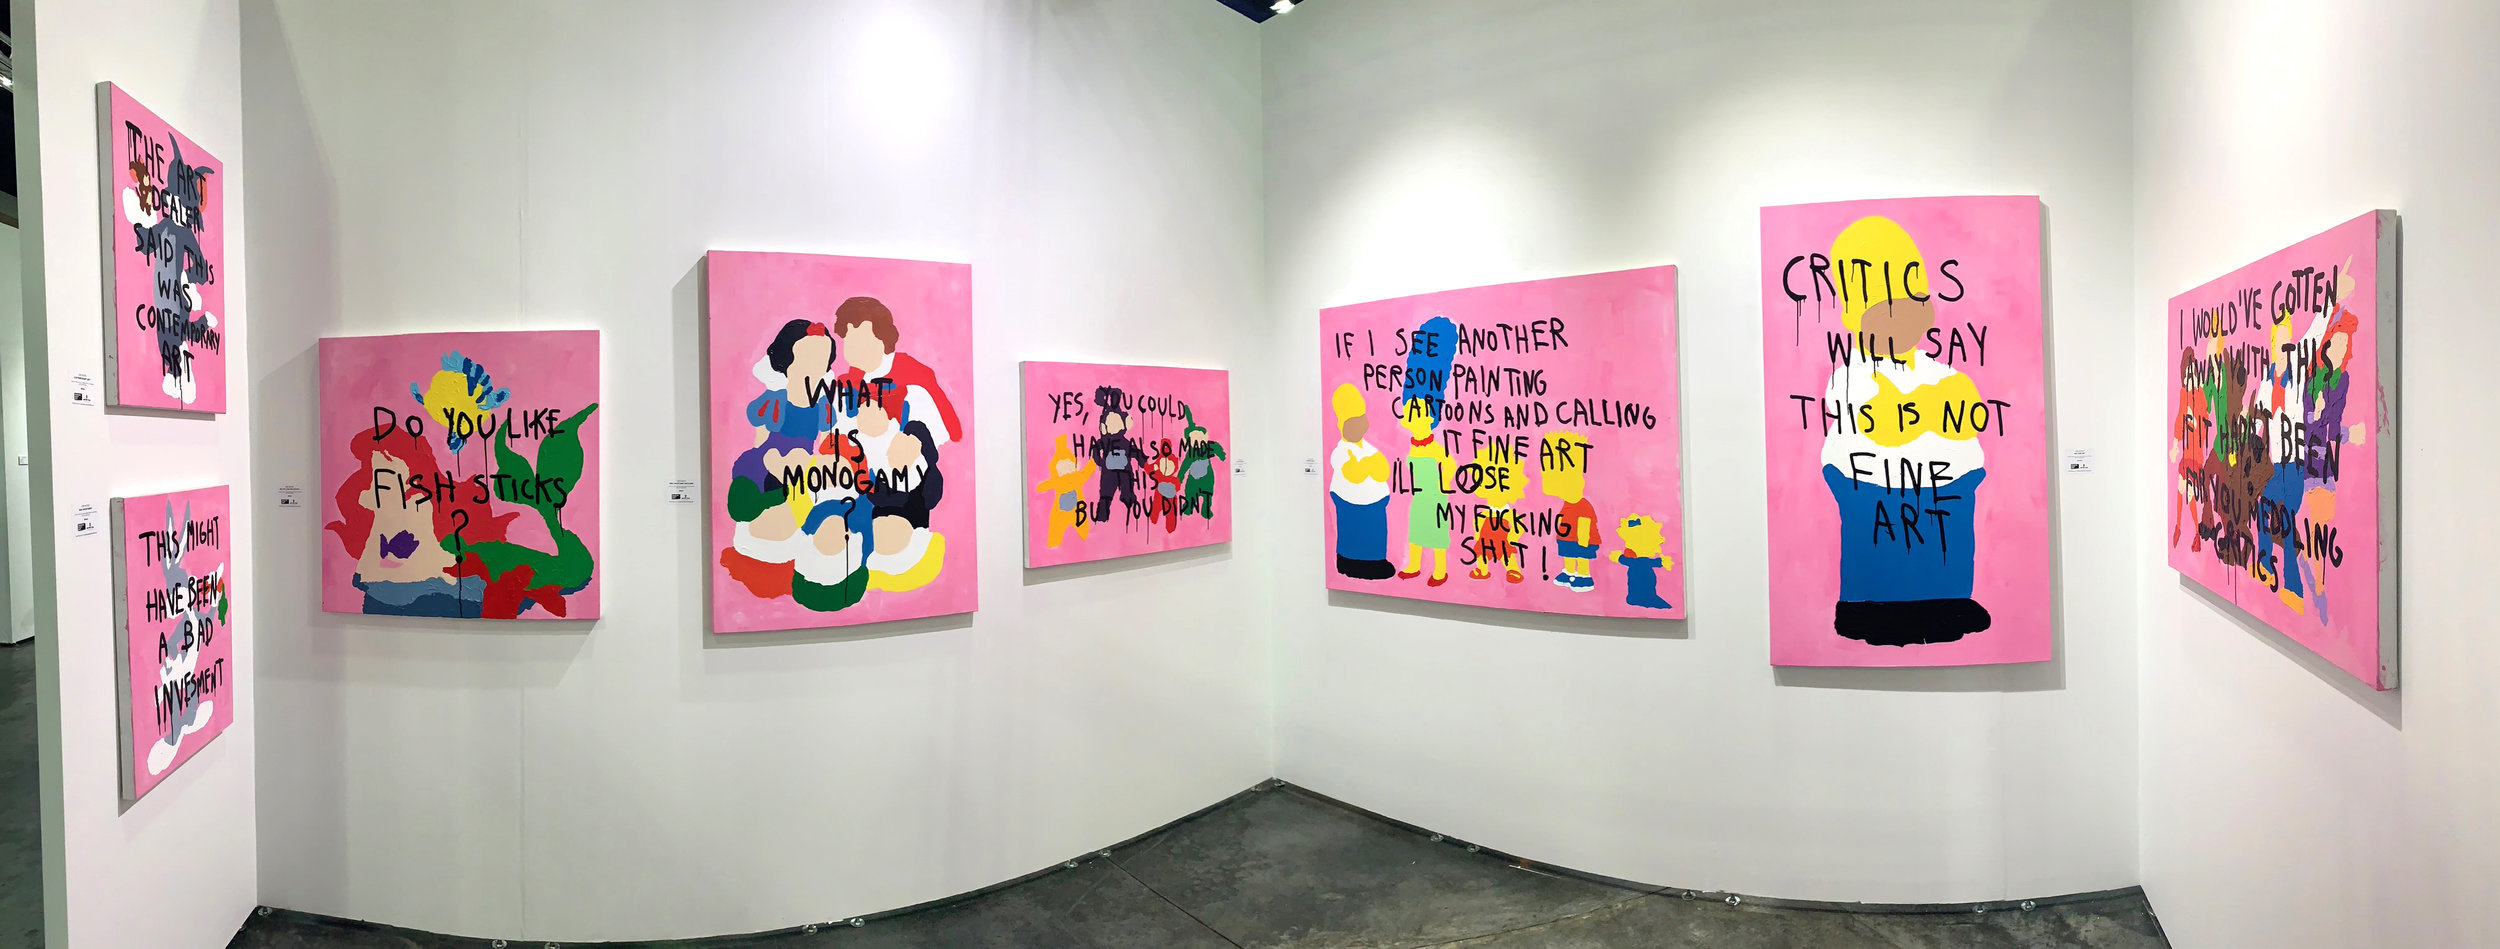 """Contemporary Art,"" ""Bad Investment,"" ""Do You Like Fish Sticks?"" ""Mrs. White and Her 8 Men,"" ""Tele Gang Bang,"" ""Standing Family,"" ""Not Fine Art,"" and ""Where's The Orgy"" by CB Hoyo exhibited at Art Palm Beach 2019"